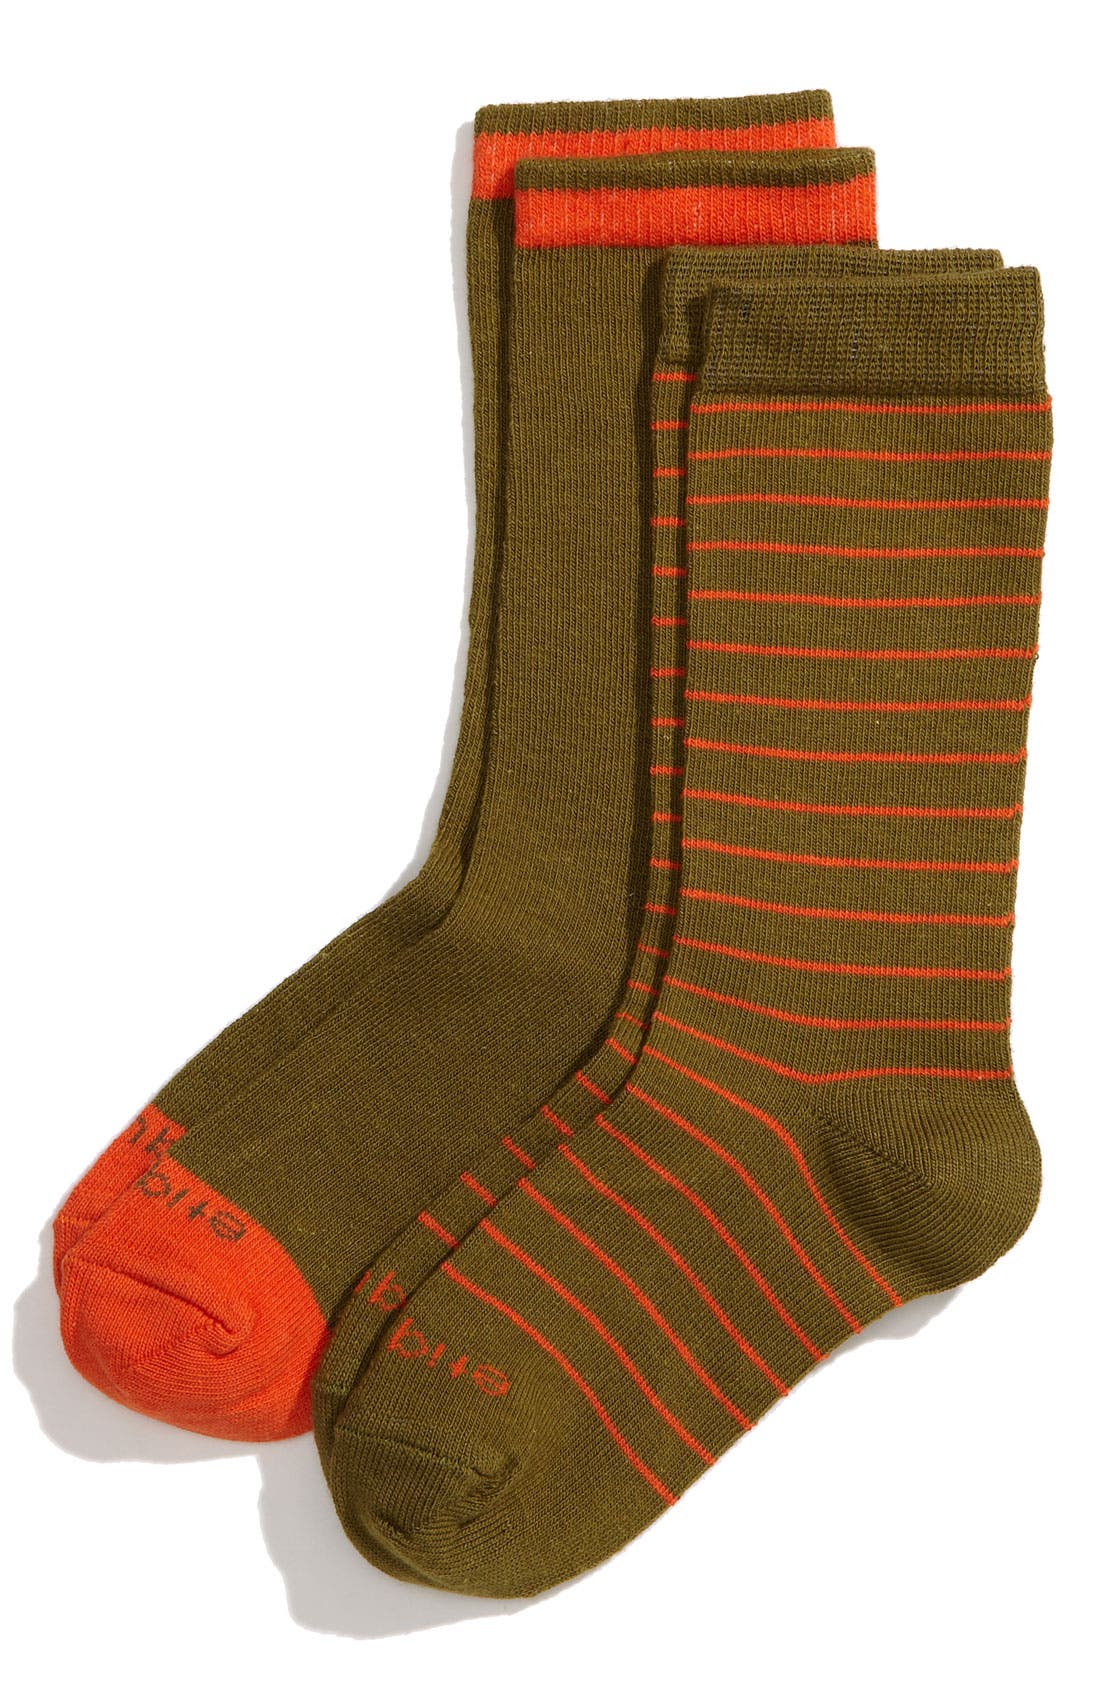 Main Image - Etiquette Clothiers 'Needle Stripe' Socks (2-Pack) (Toddler & Little Kid)